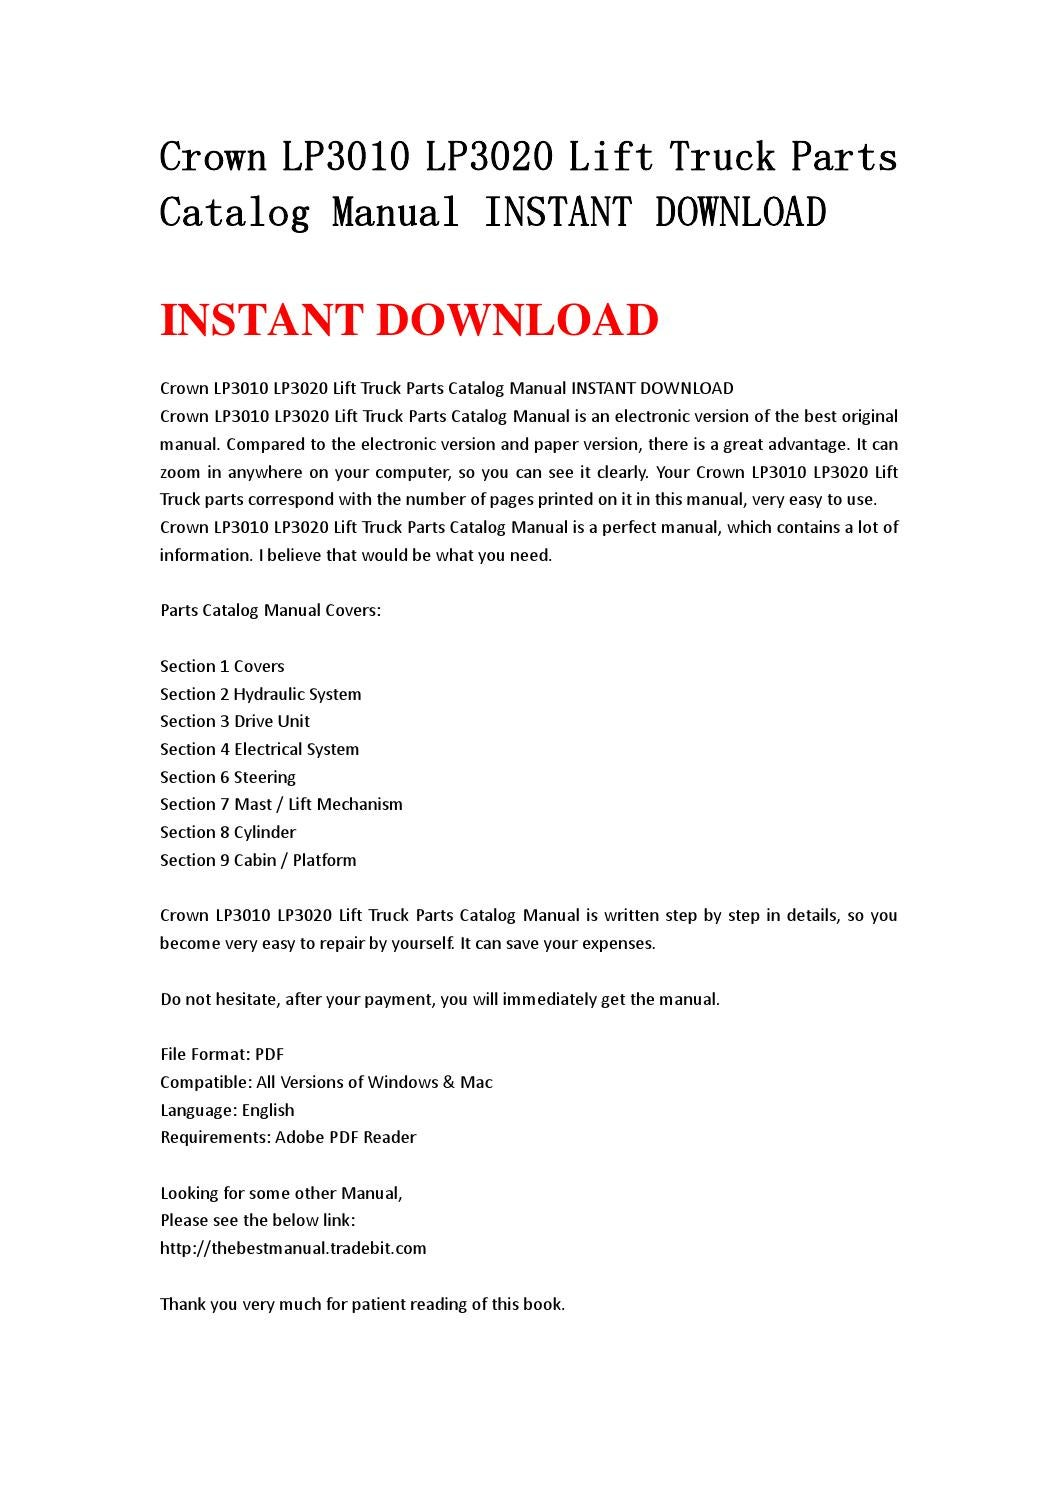 Crown lp3010 lp3020 lift truck parts catalog manual instant download by  jhhsnenf - issuu